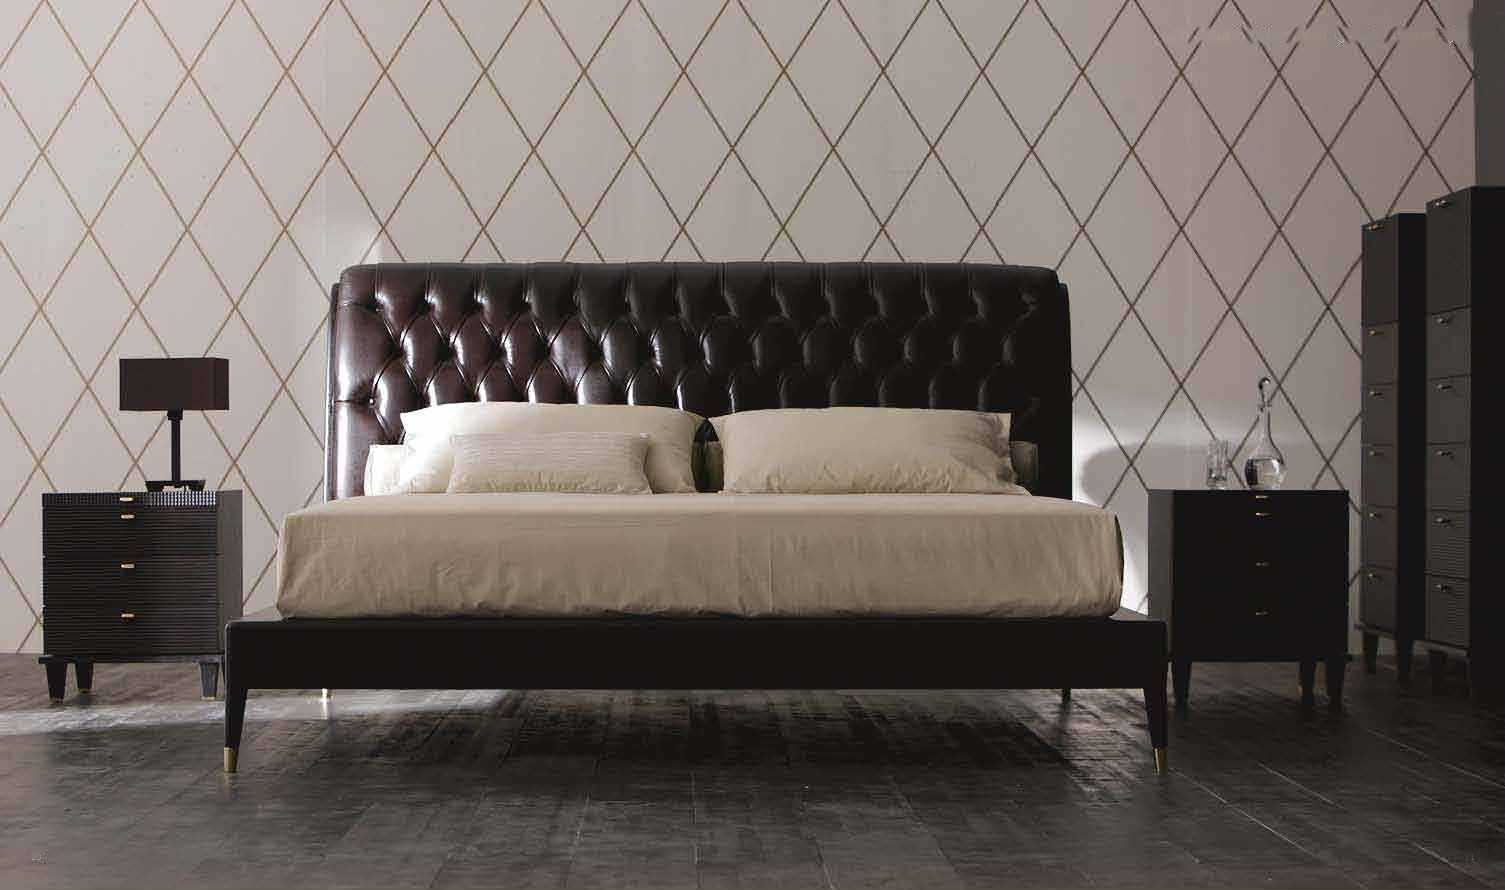 Bed headboard leather - Double Bed Contemporary Leather With Upholstered Headboard